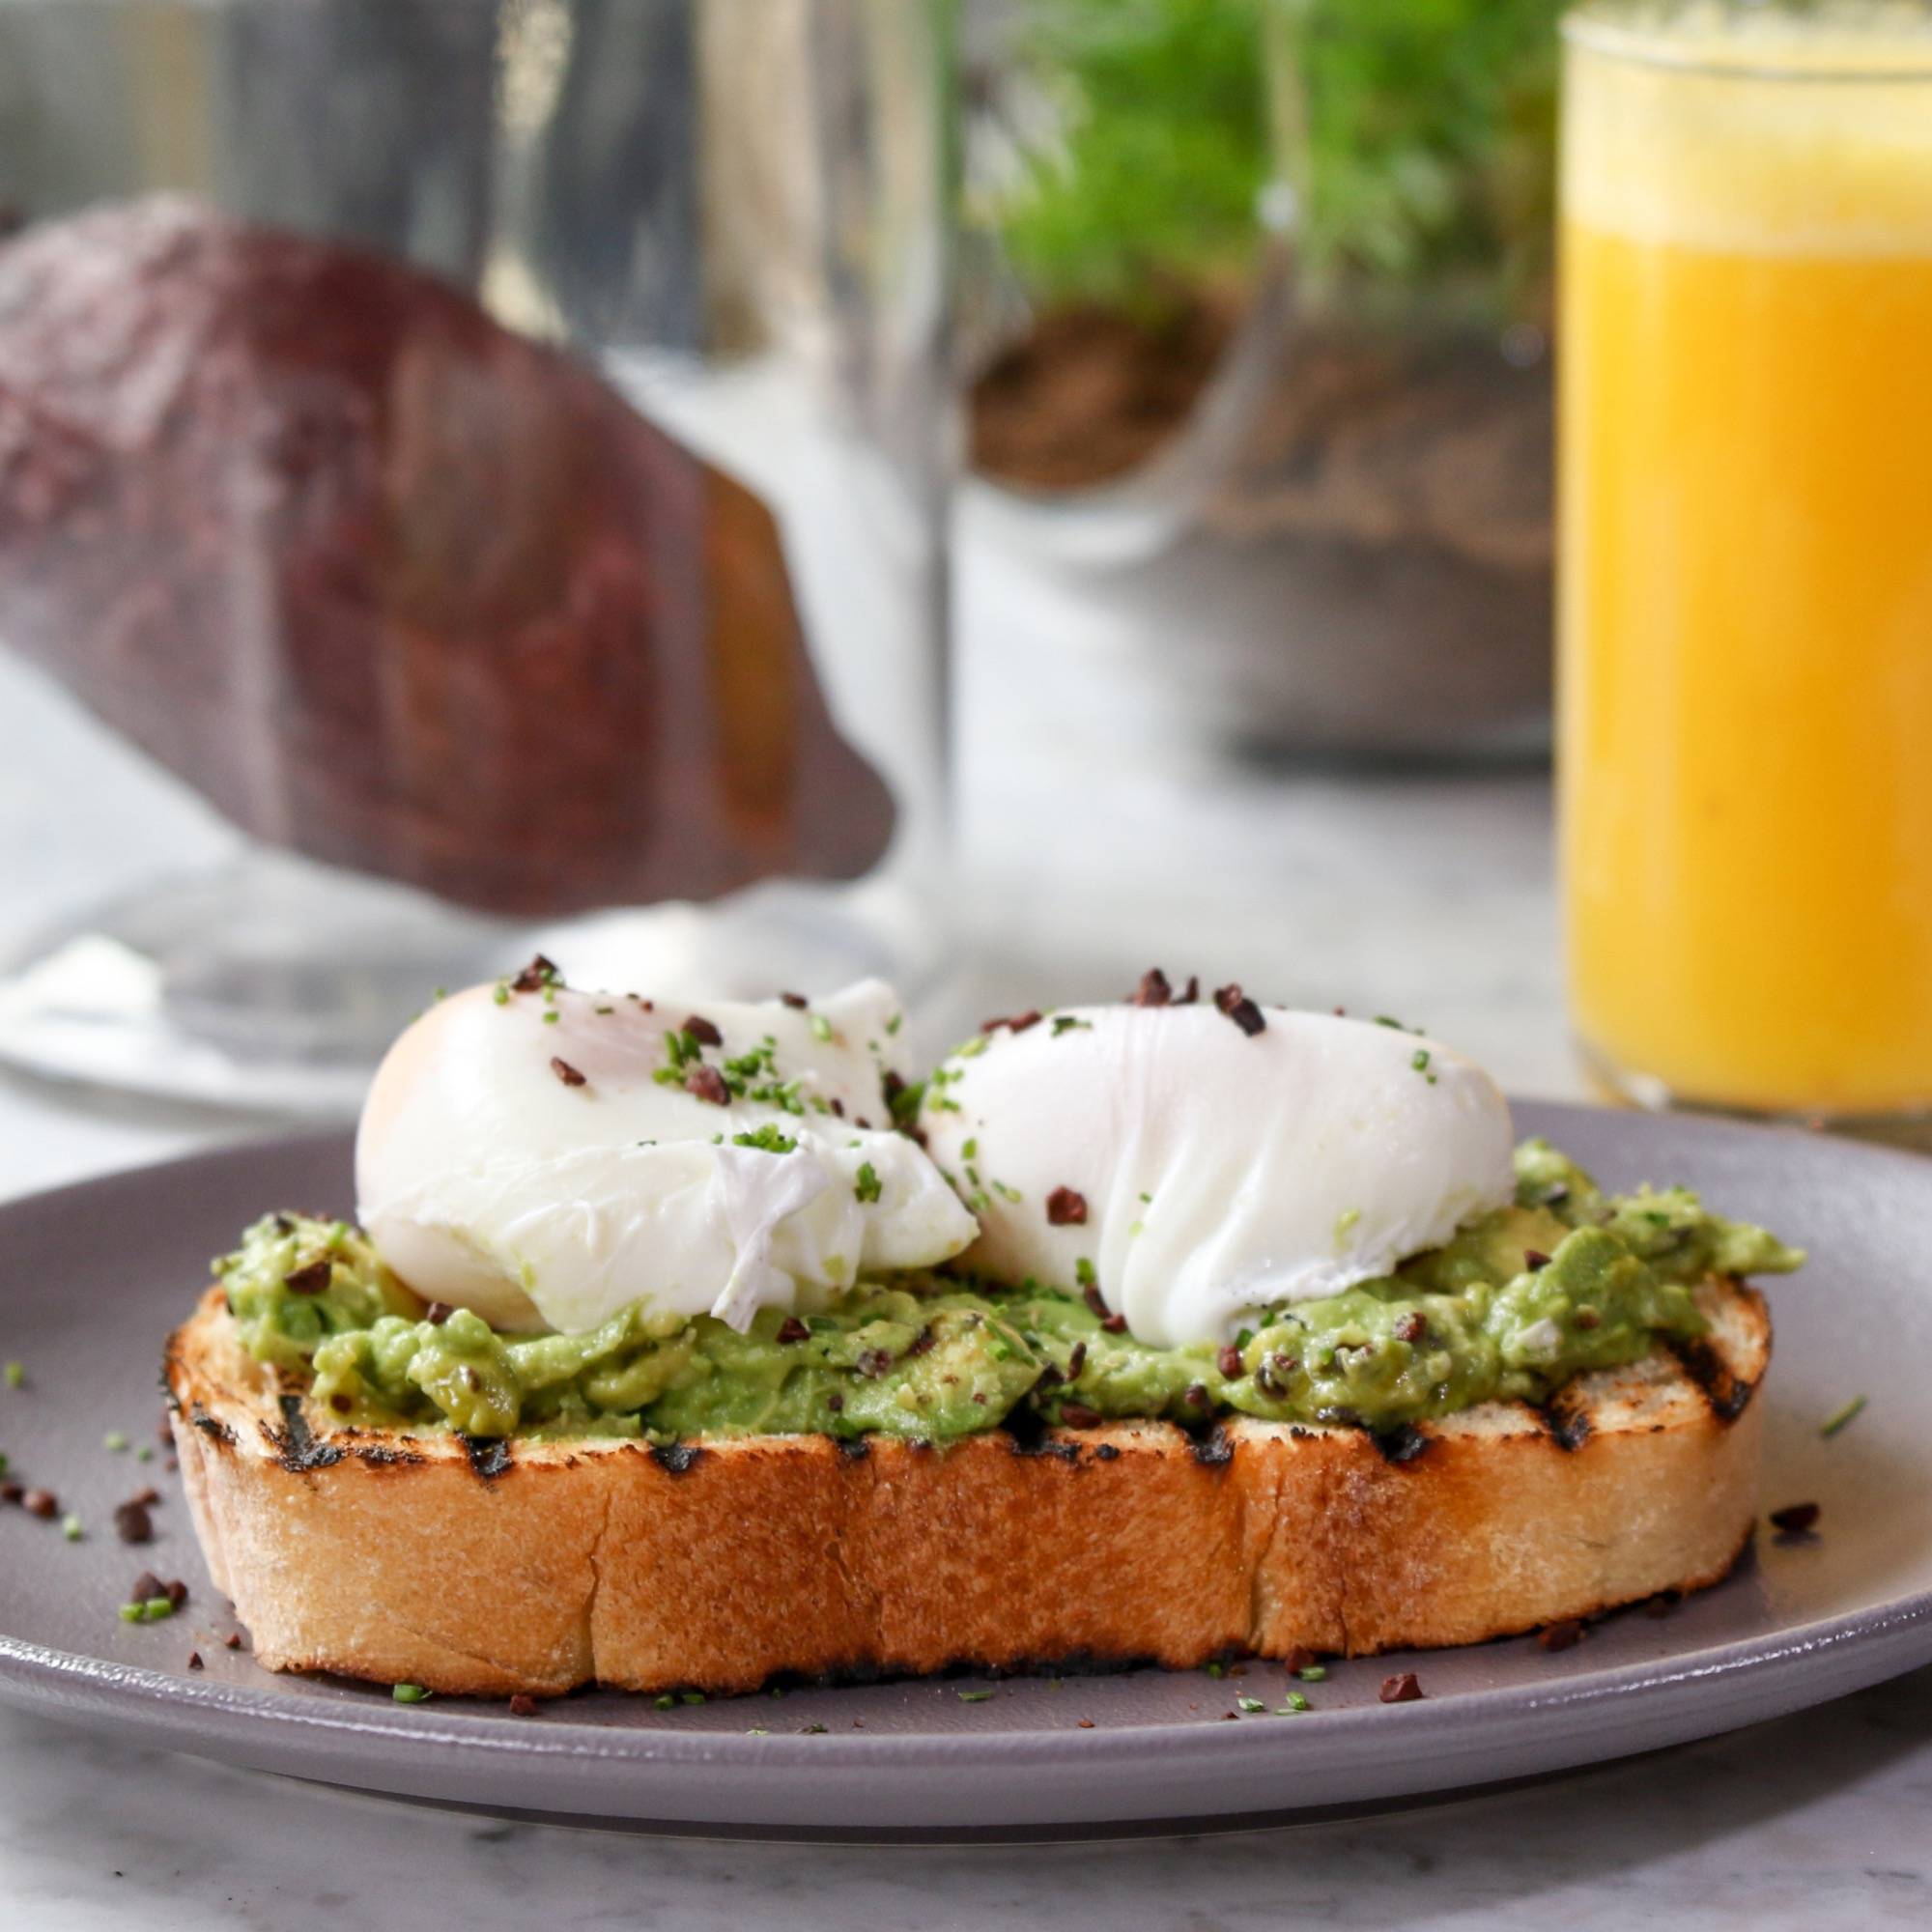 poached eggs with crushed avocado on sourdough bread